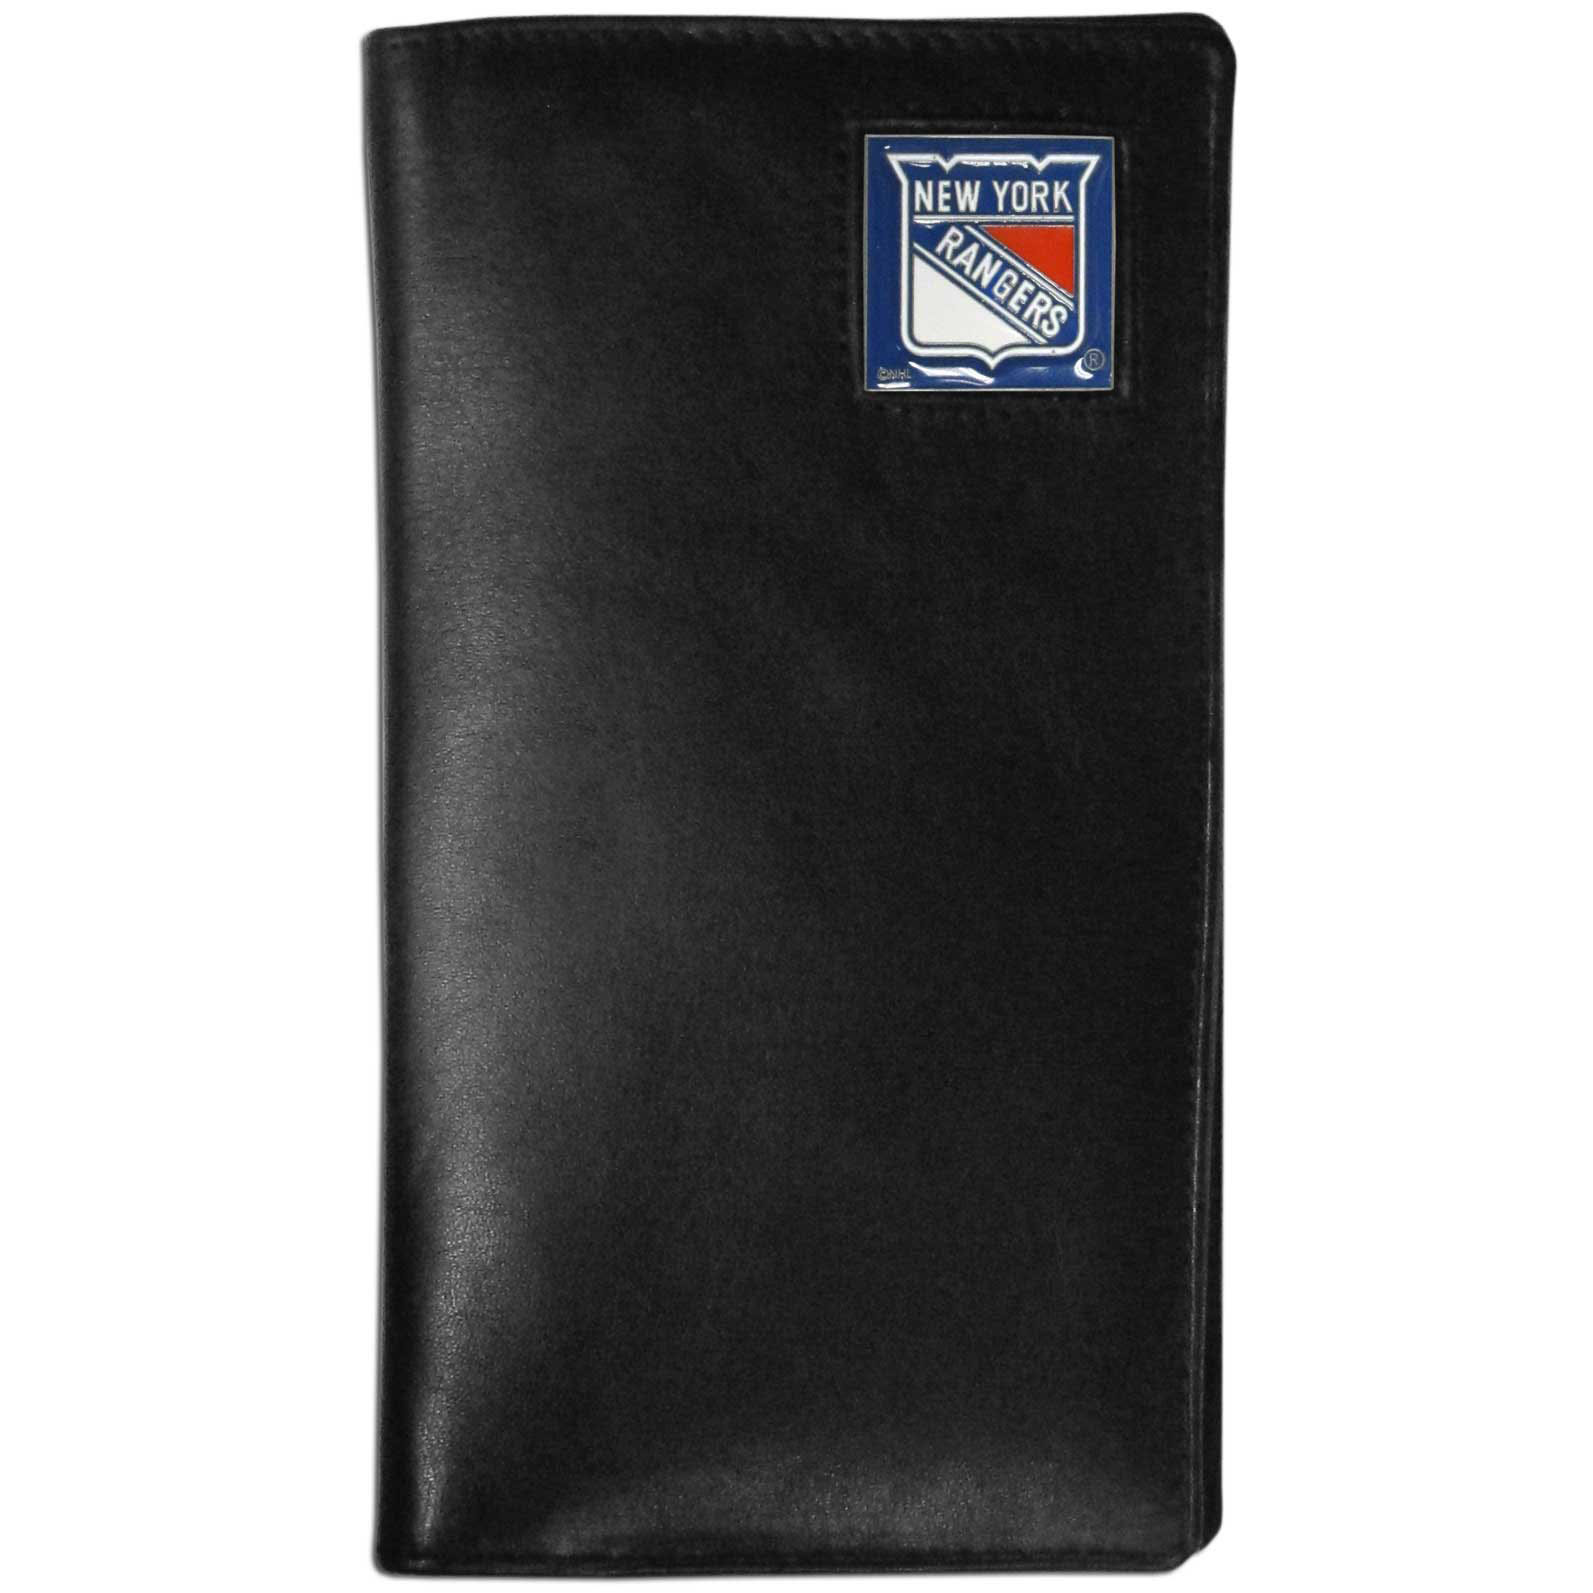 New York Rangers Tall Leather Wallet - This officially licensed New York Rangers tall leather wallet cover is made of high quality leather with a fully cast metal New York Rangers emblem with enameled New York Rangers color detail. The cover fits both side and top loaded checks and includes a large zippered pocket, windowed ID slot, numerous credit card slots and billfold pocket. Thank you for visiting CrazedOutSports